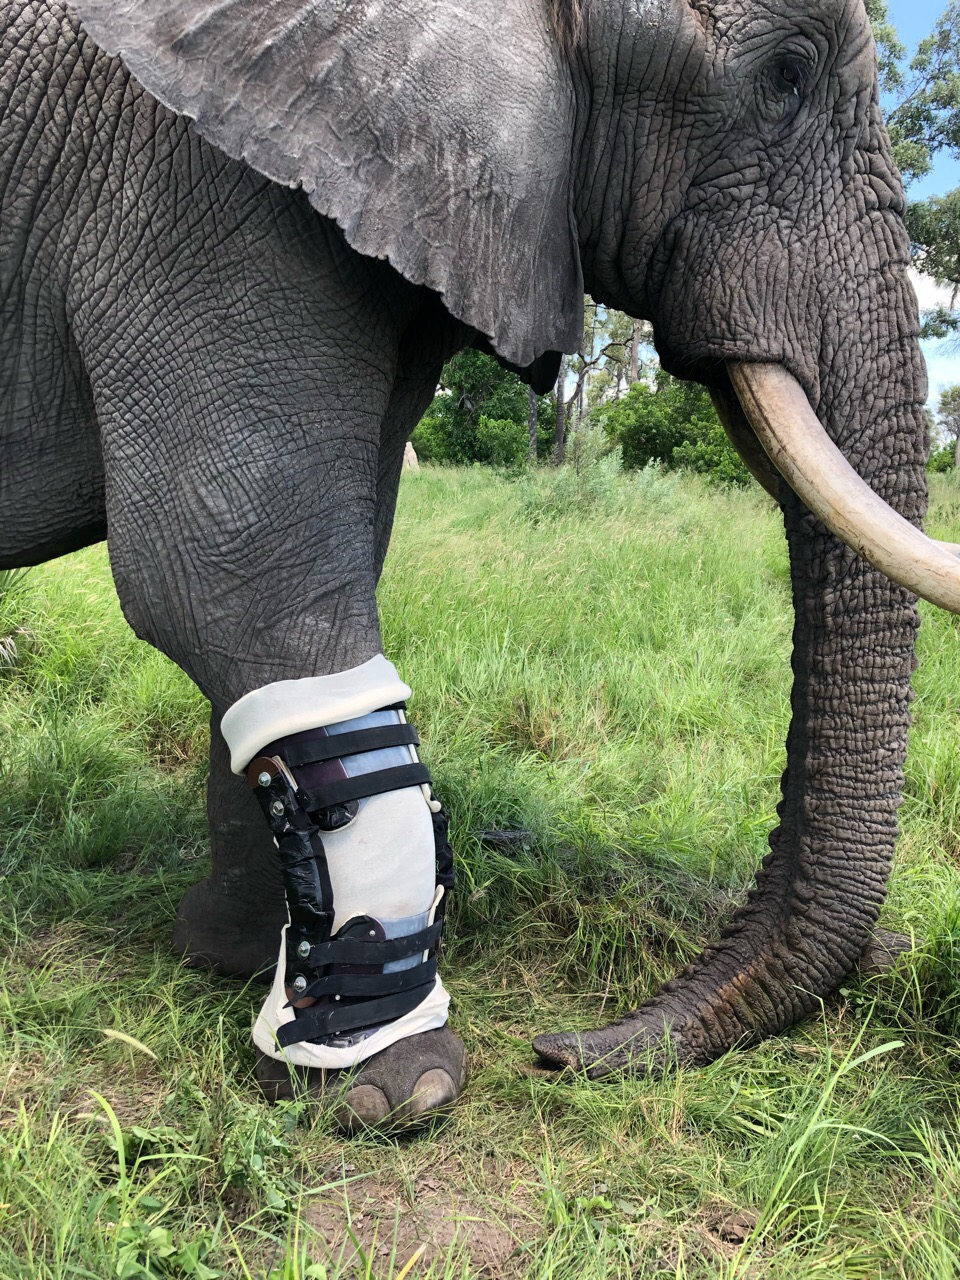 Jabu sporting the World's First Elephant Orthotic Leg brace - fully adjusted